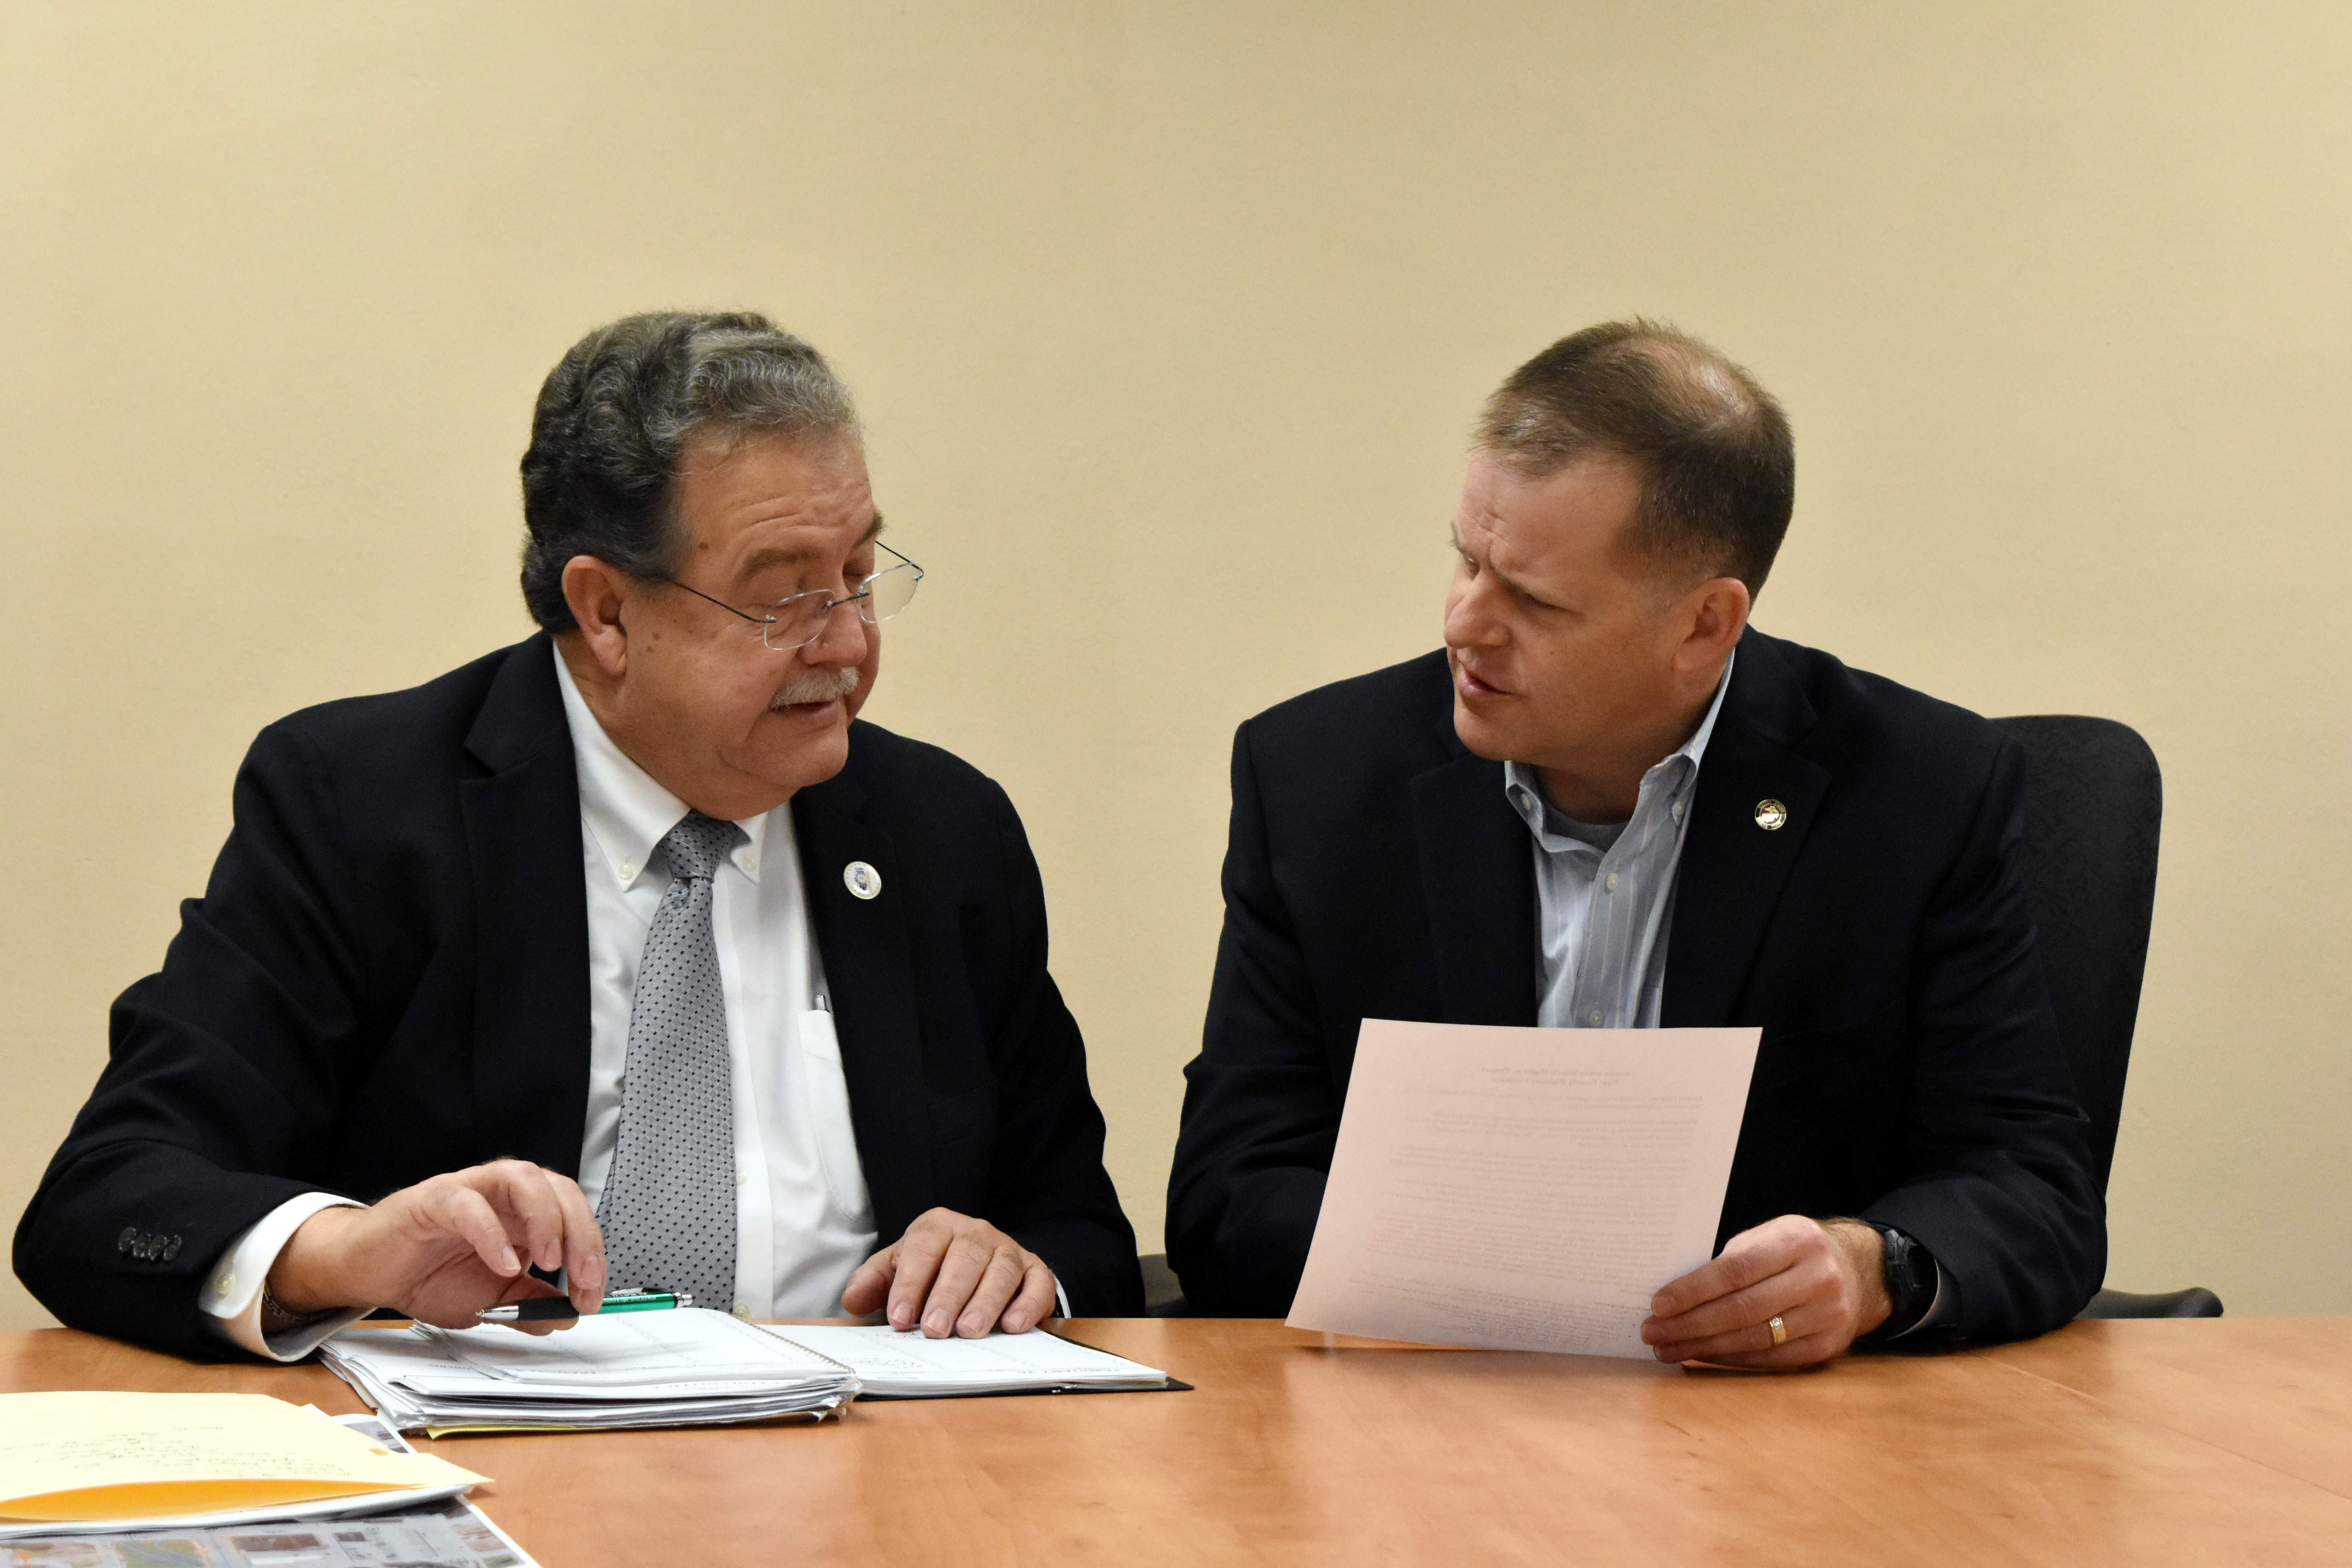 Four County Highway Coalition Chairman Marc Kiehna (left) speaks with State Sen. Paul Schimpf (R-Waterloo) prior to Tuesday's meeting. The pair are looking at an informational sheet about the highway proposal.